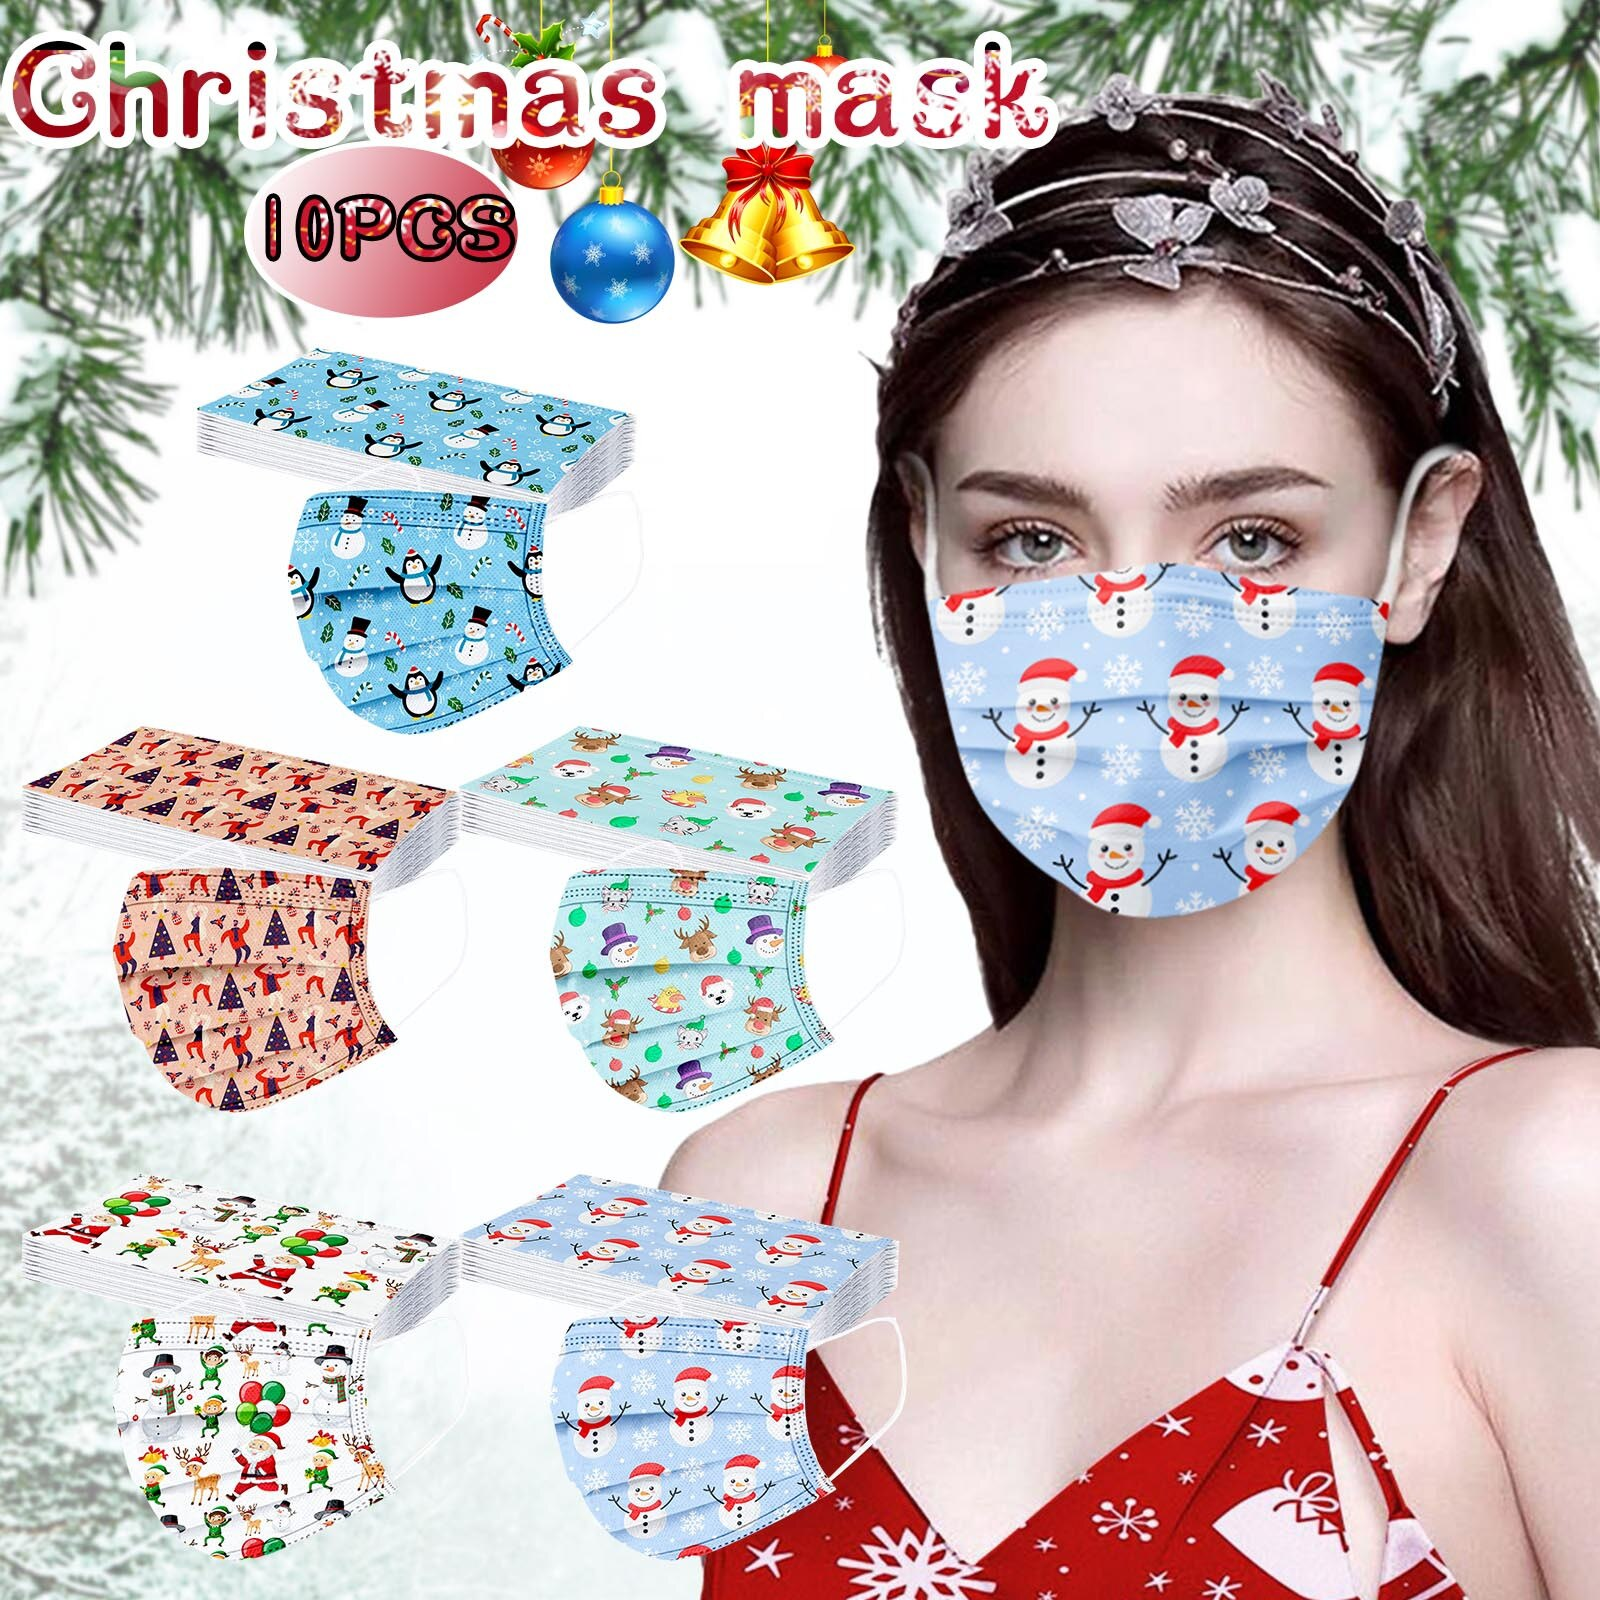 10pc Christmas face Mask Adults Unisex Disposable three-layer Nonwove Mascarillas High Quality Masks elastic Earloop Mascherine 1